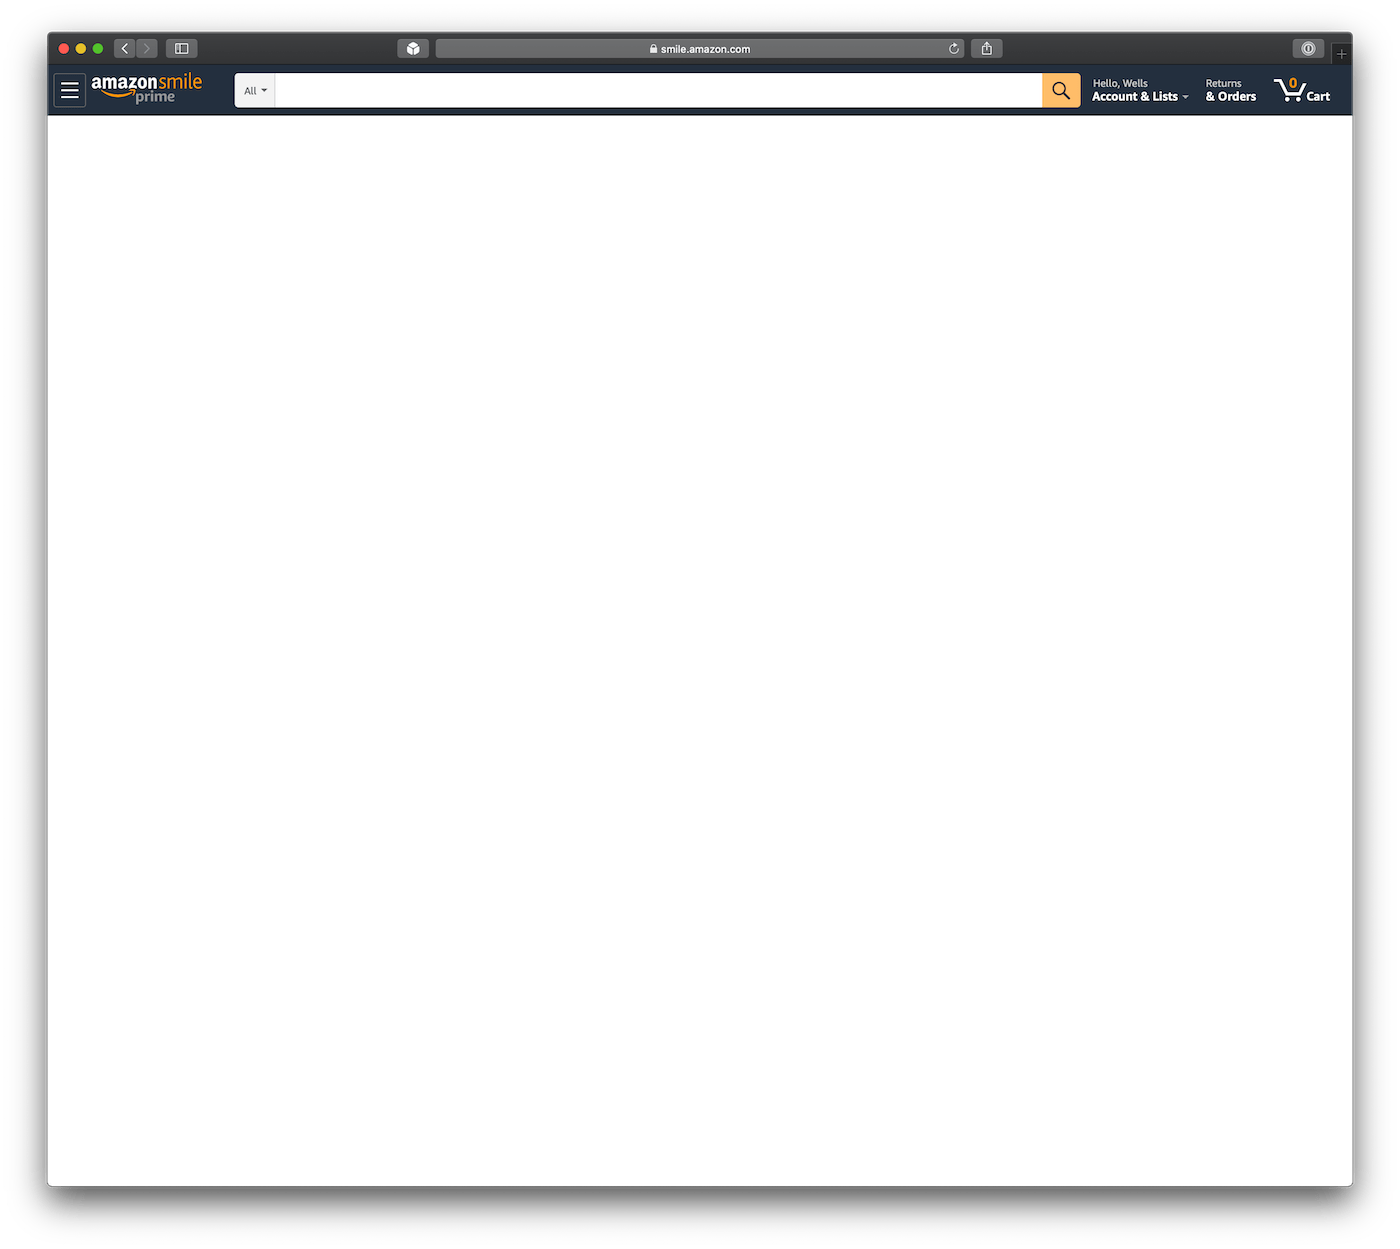 amazon.com homepage after